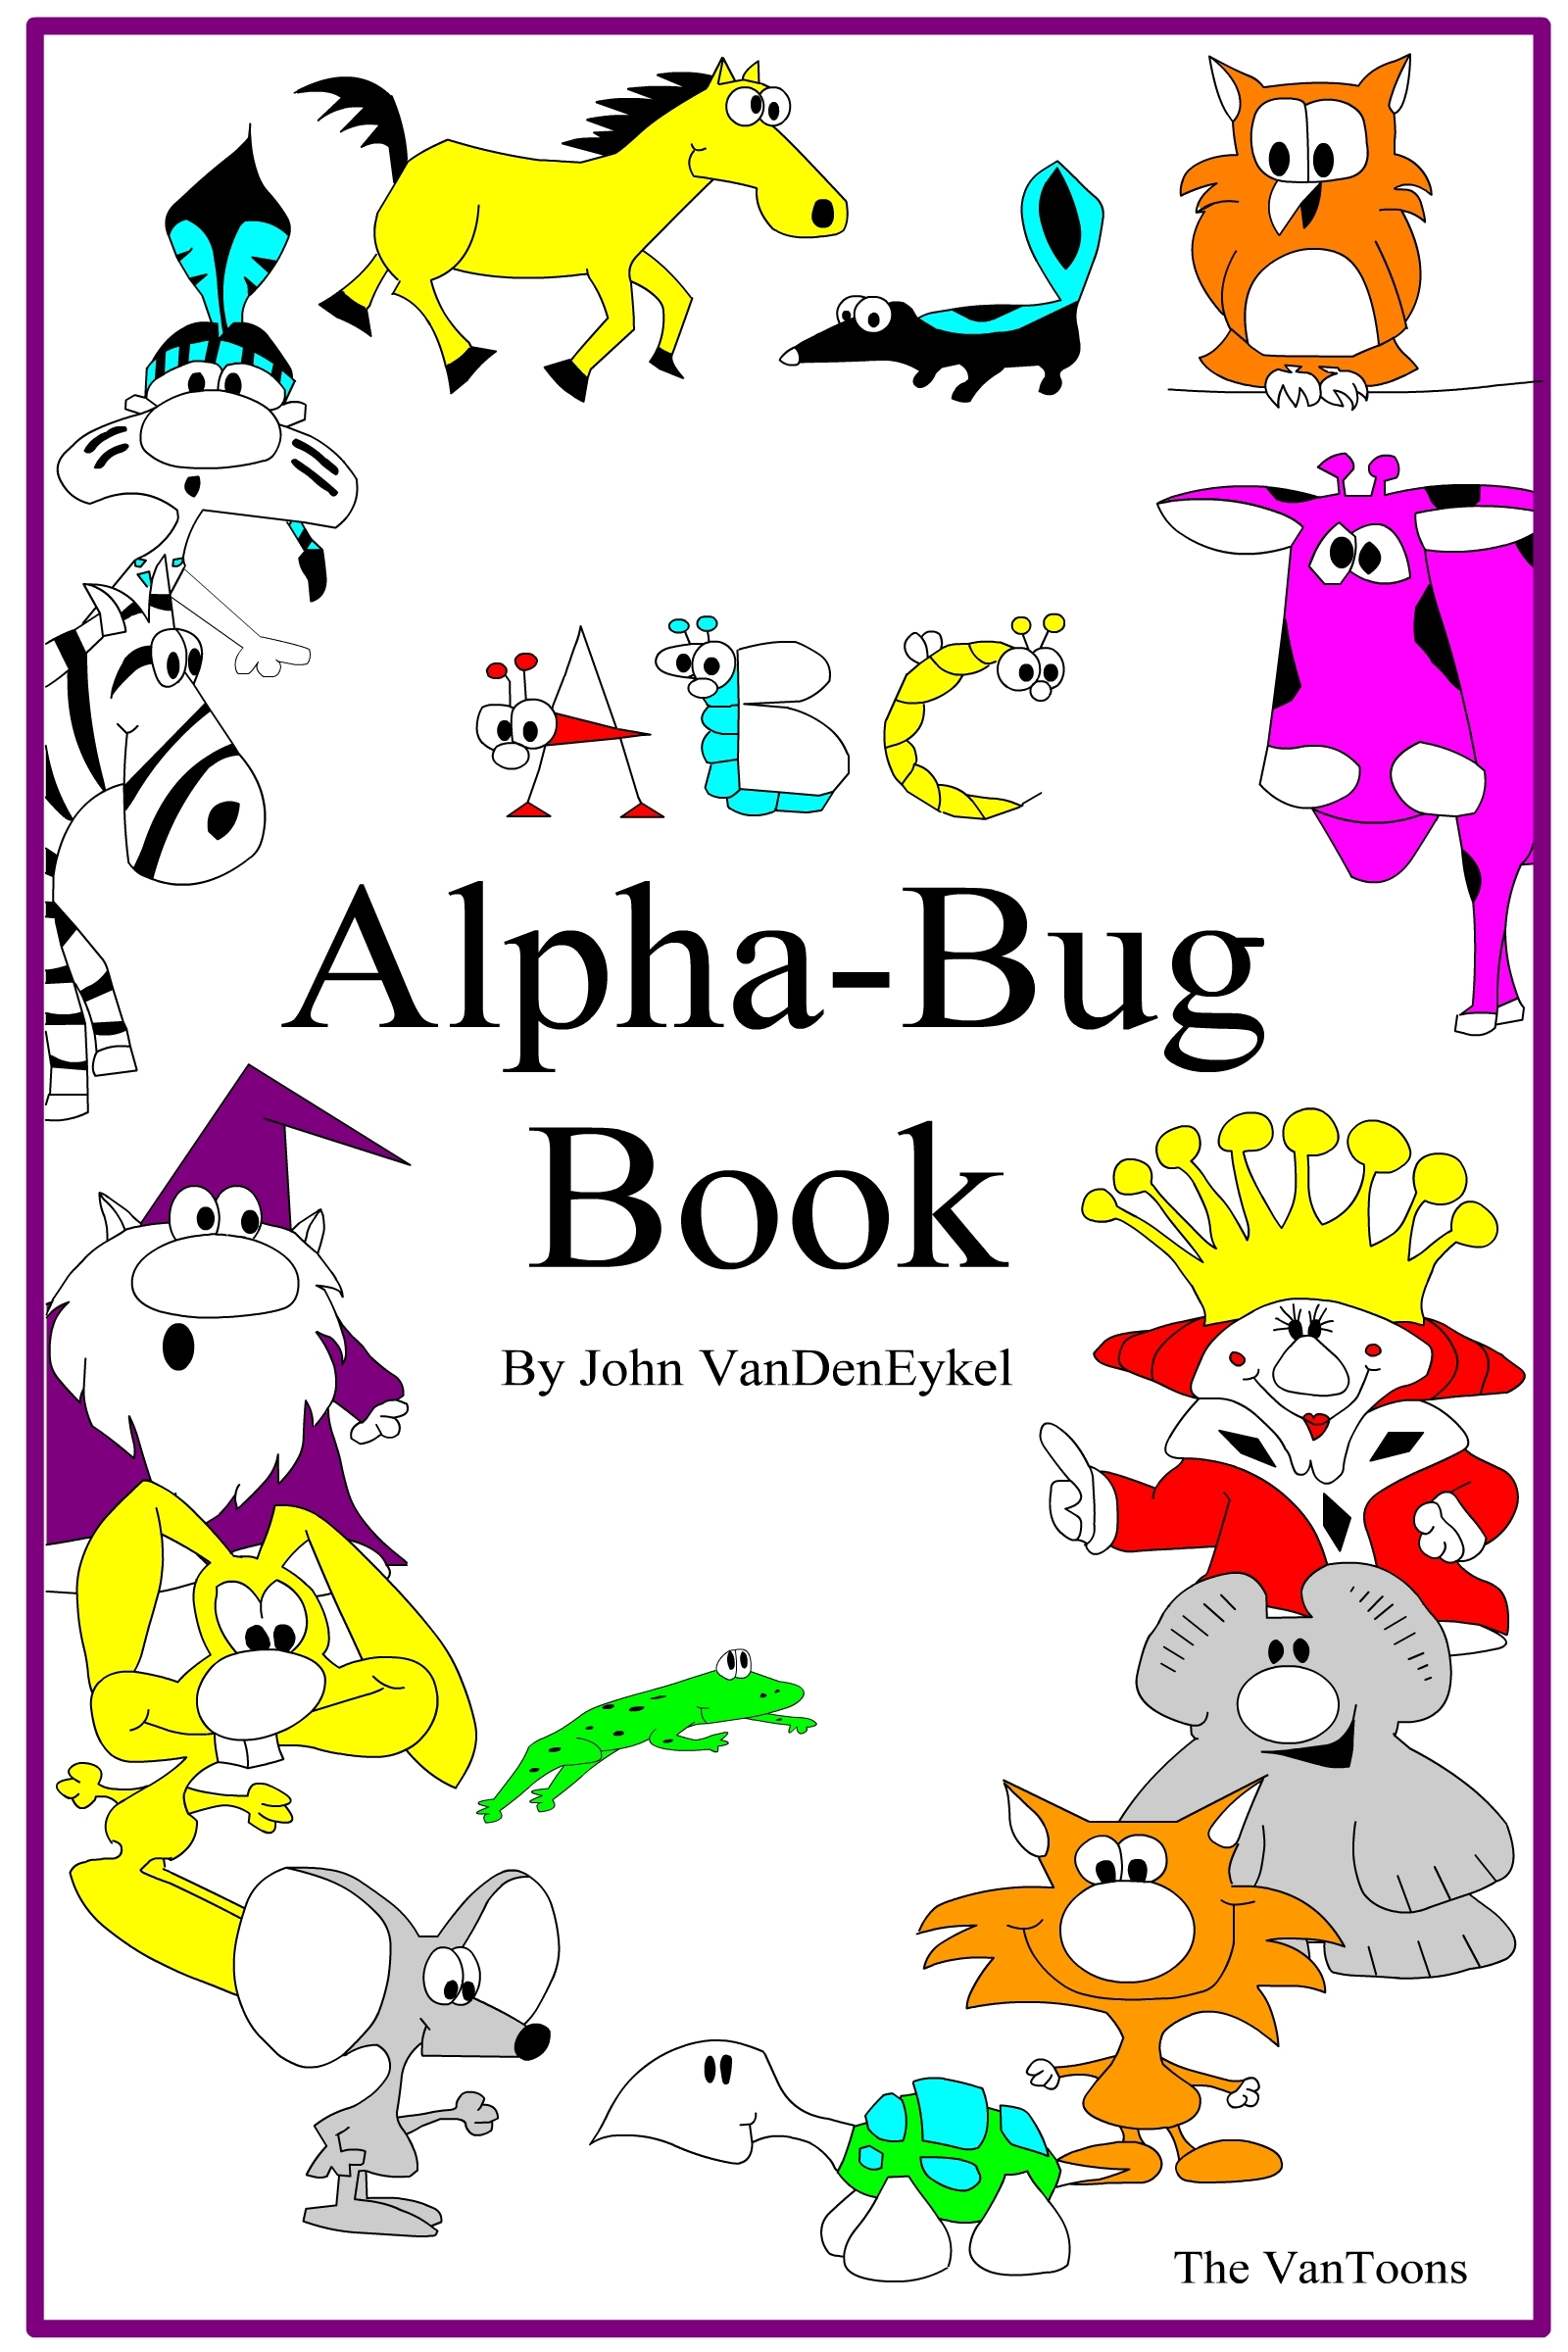 ABC Alpha-Bug Book